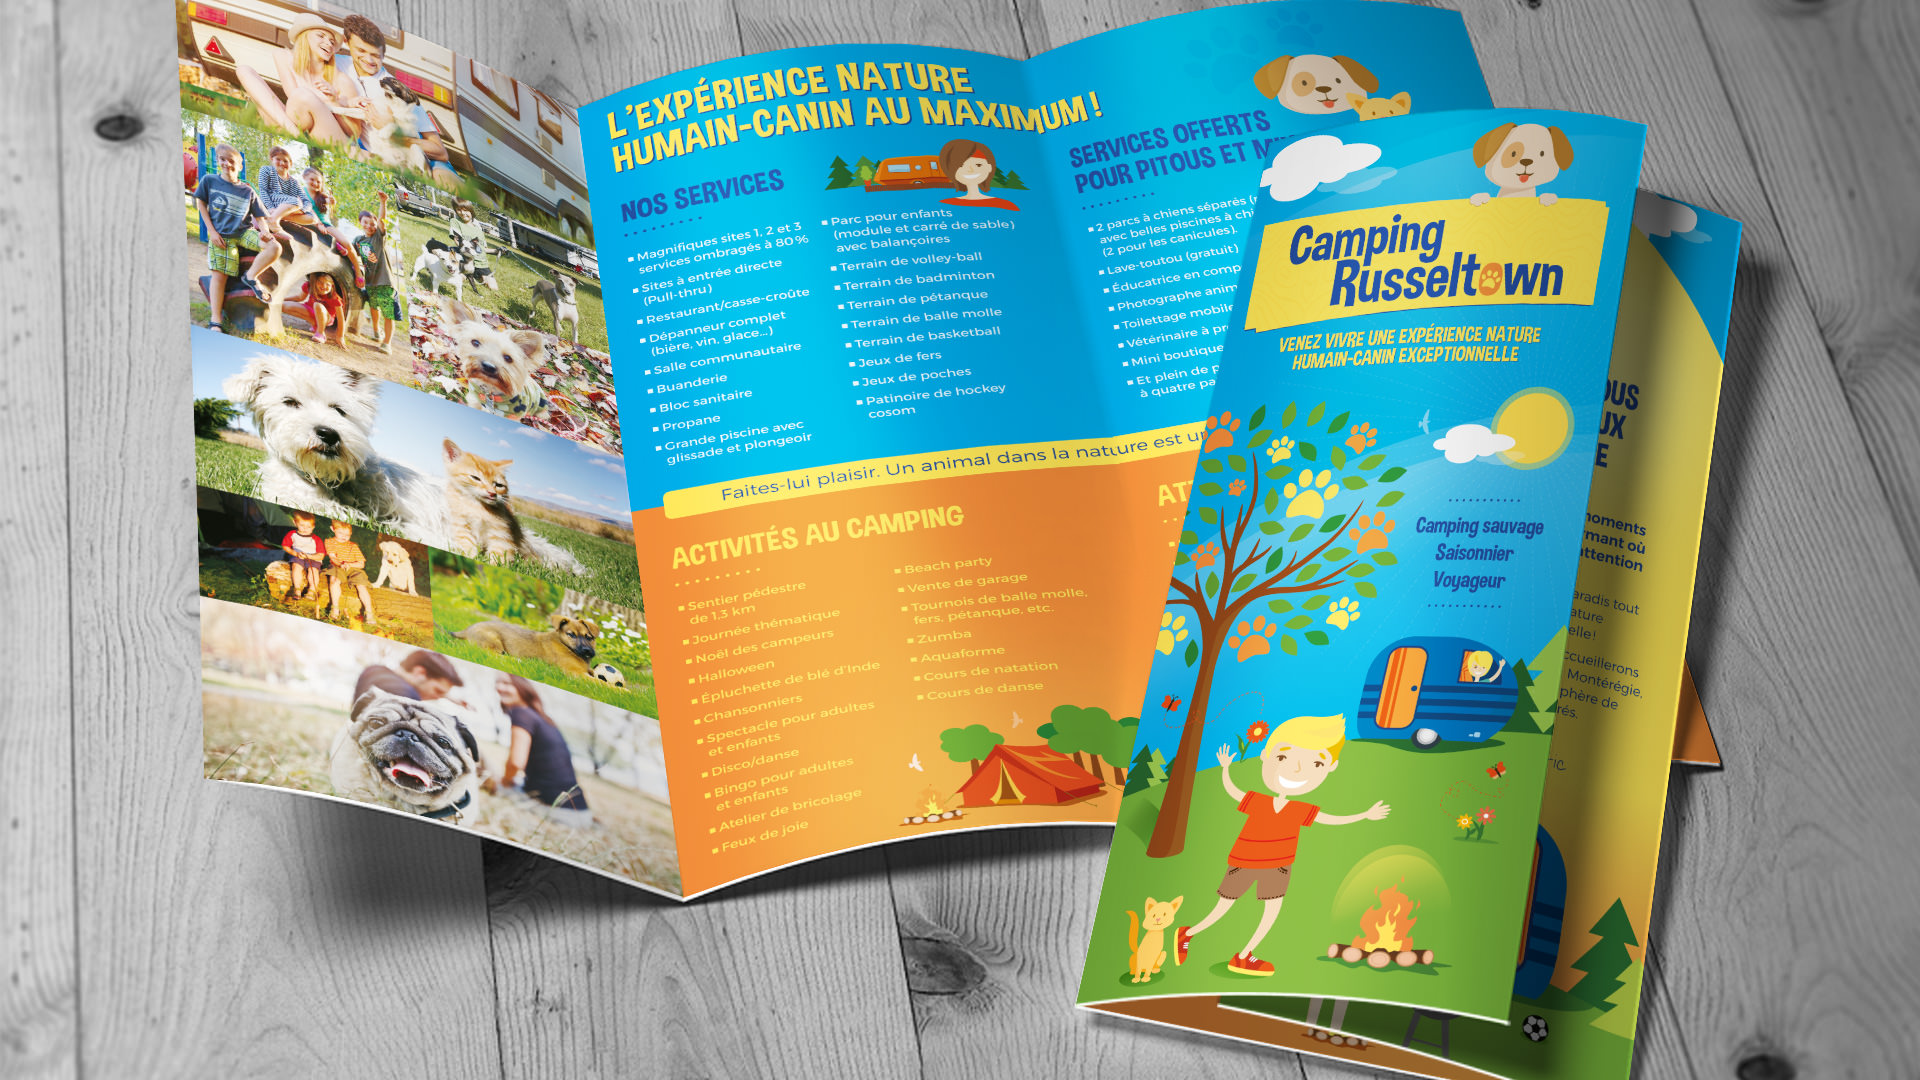 Camping Russeltown - depliant - site internet - carte d'affaire